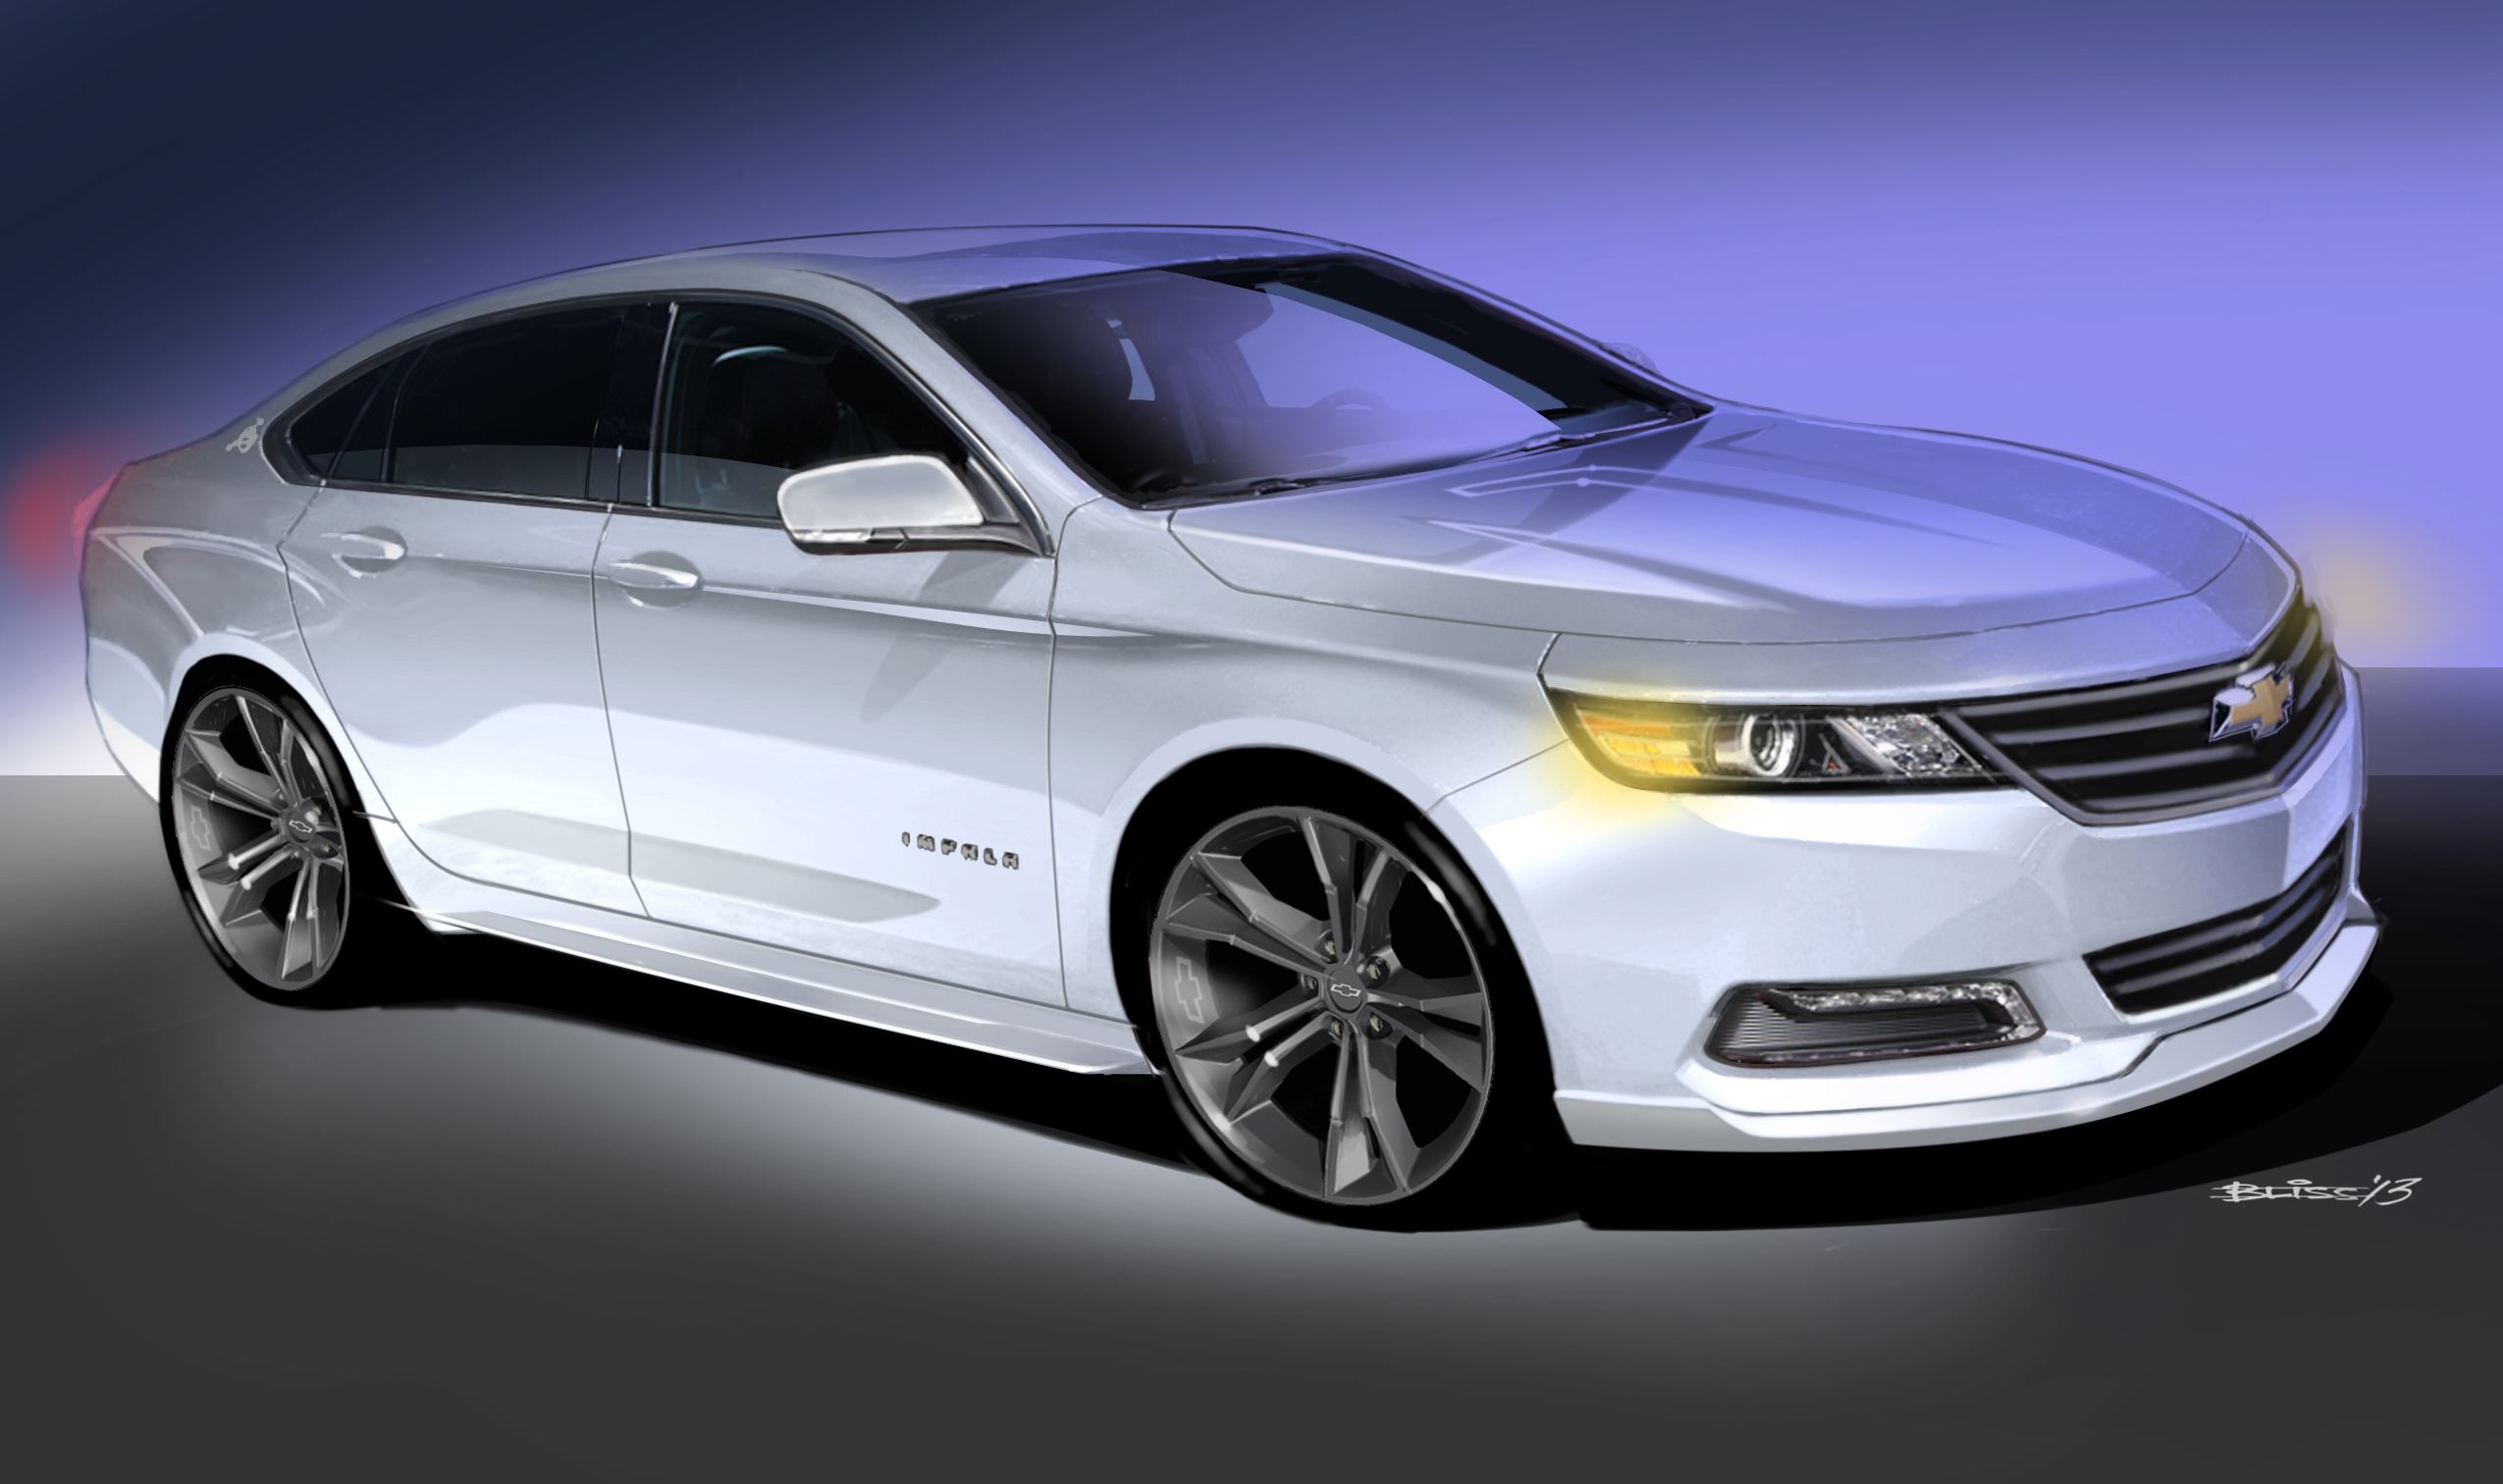 2014 Chevrolet Impala Urban Cool Concept Review - Top Speed